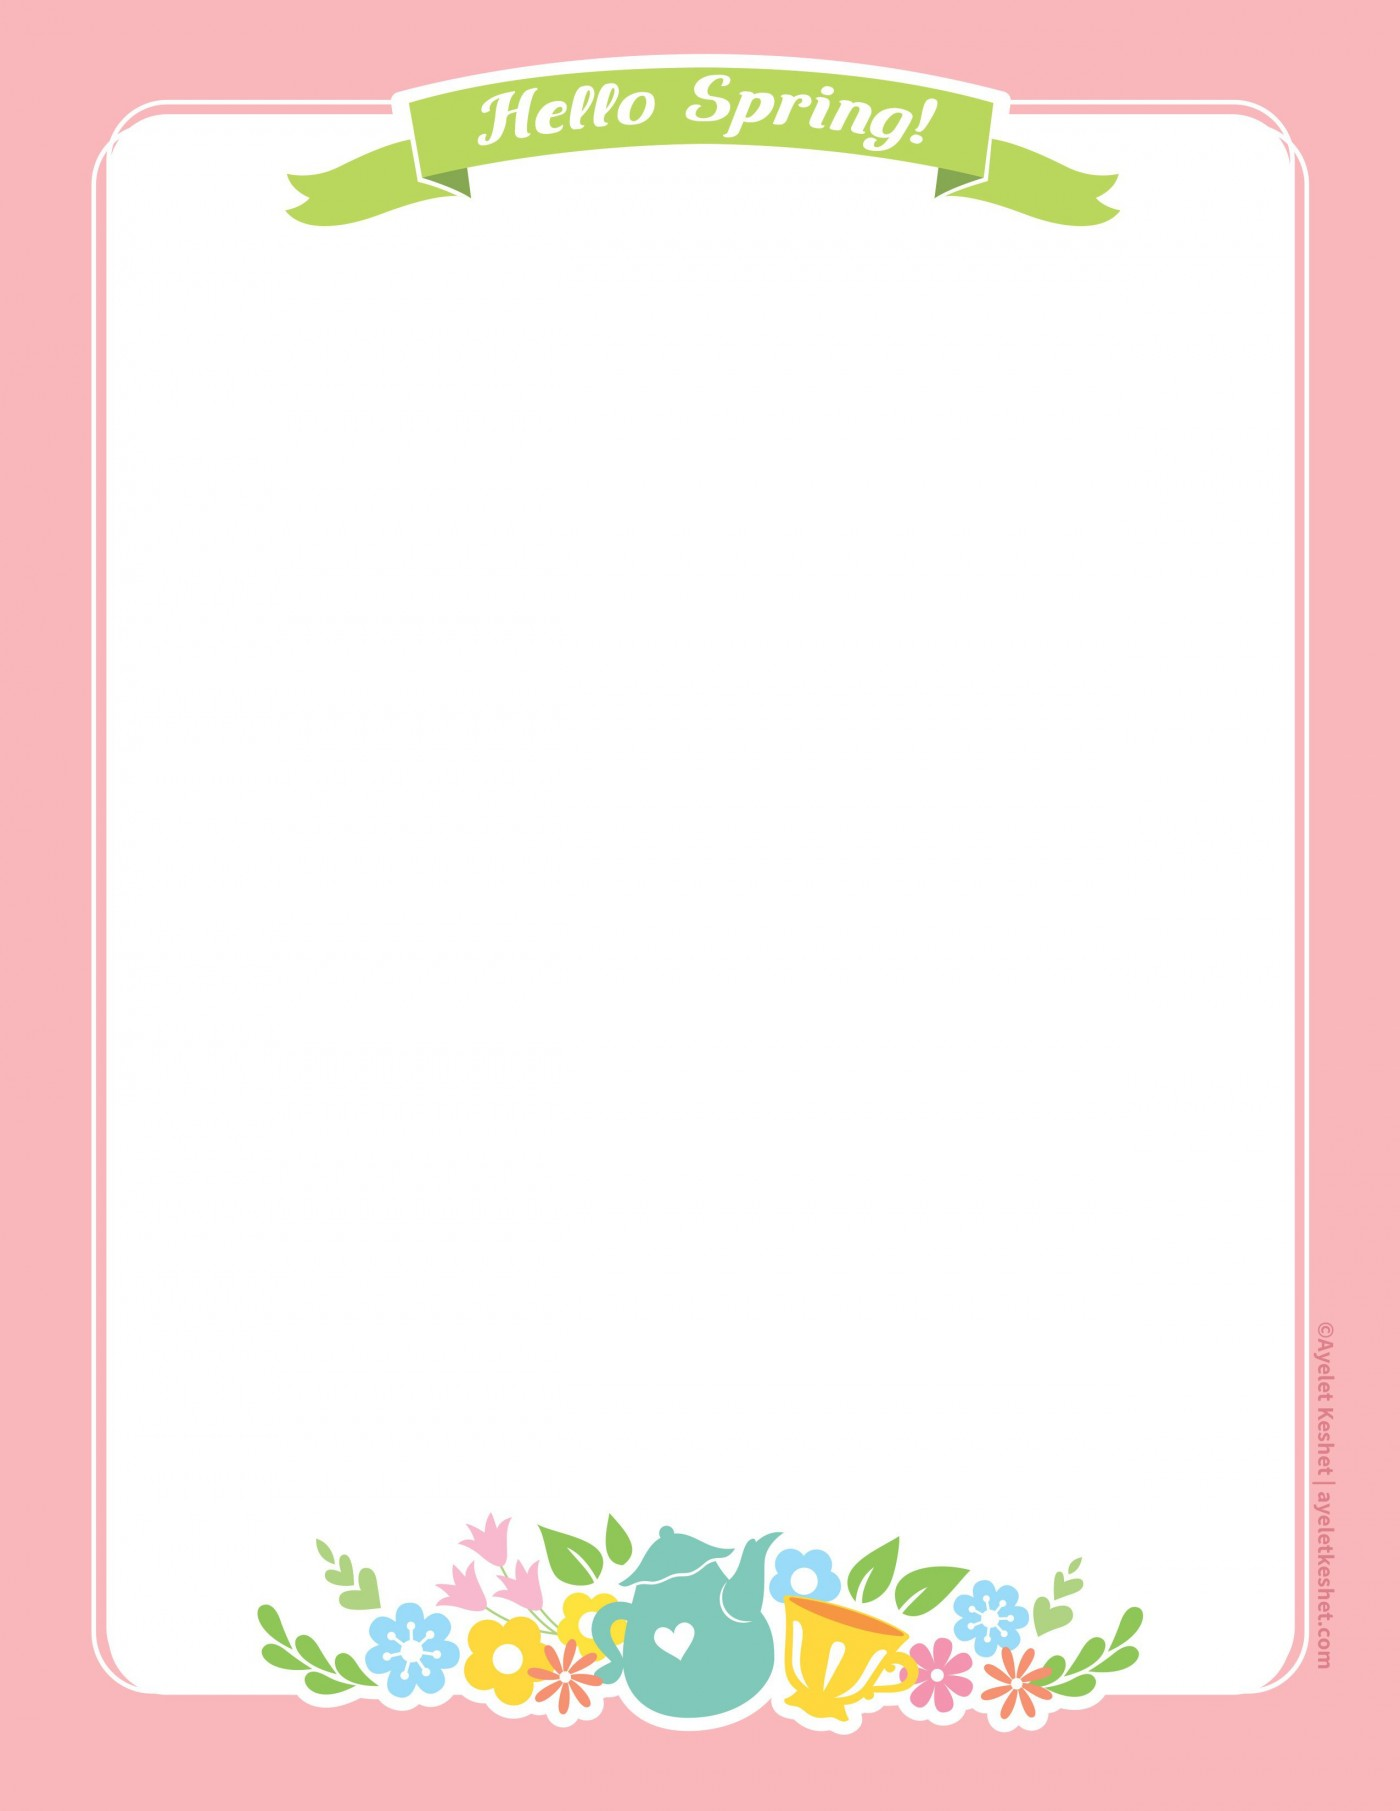 010 Imposing Free Printable Stationery Paper Template Example 1400